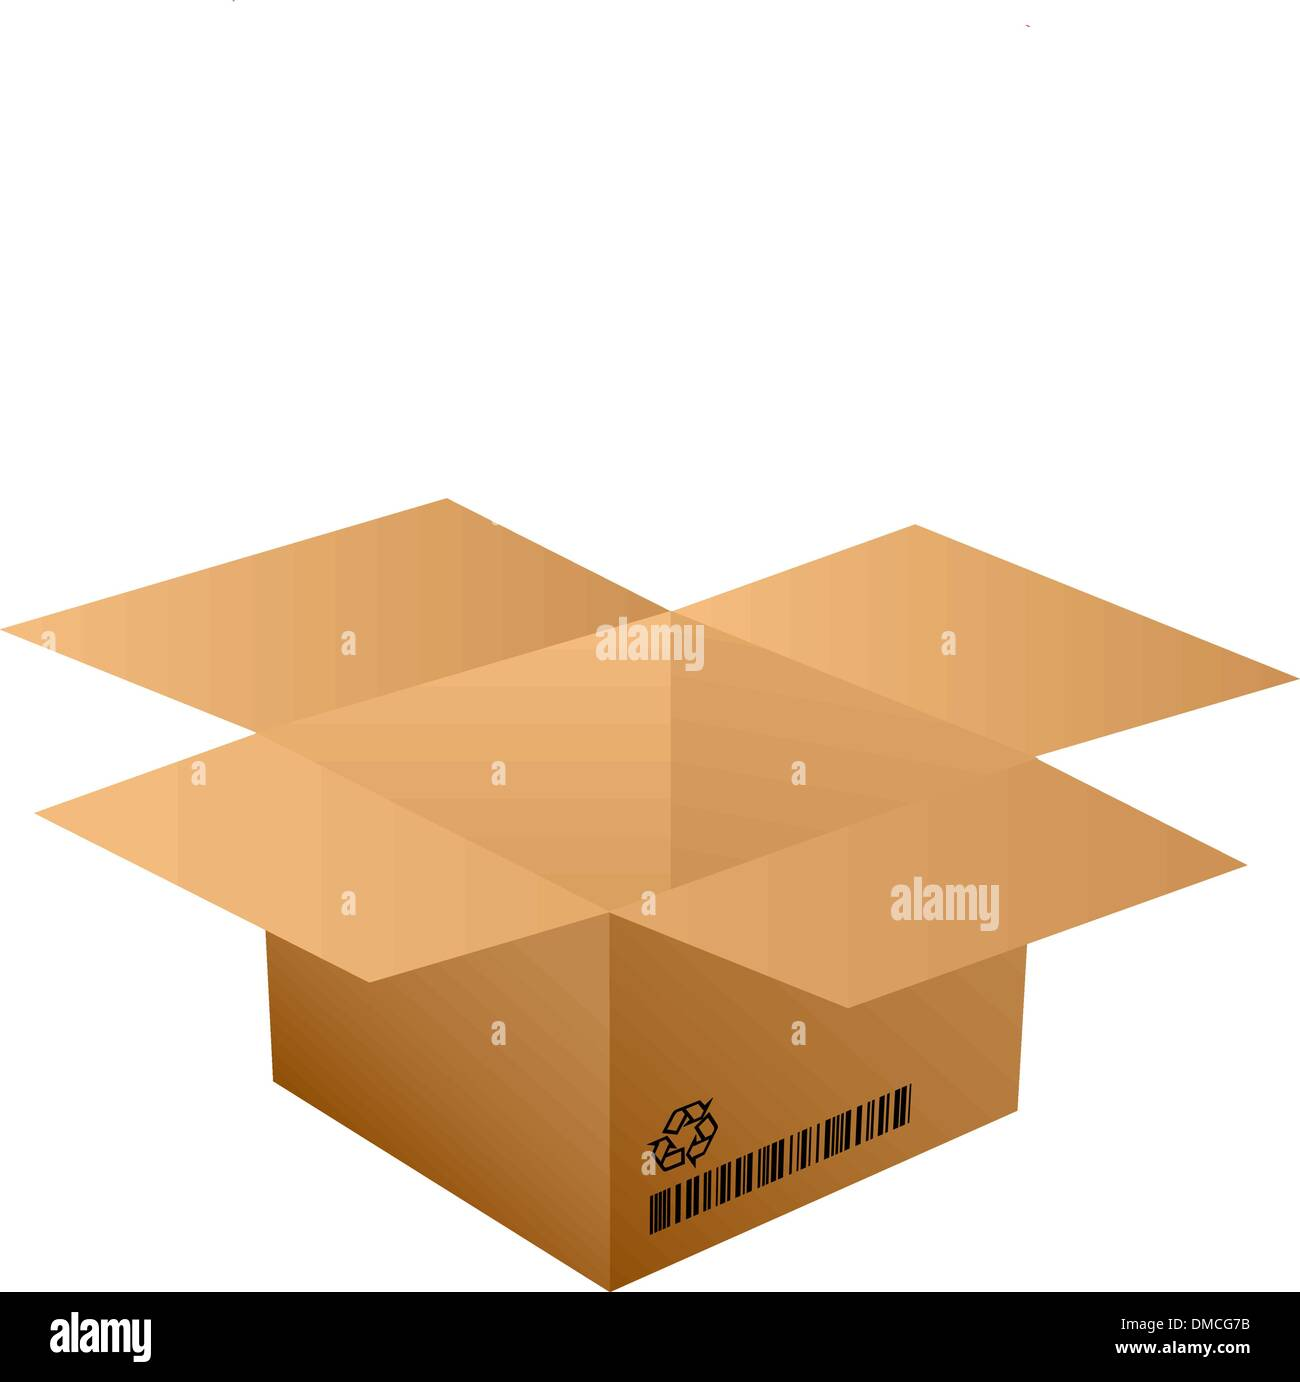 opened cardboard bow with bar code - Stock Vector